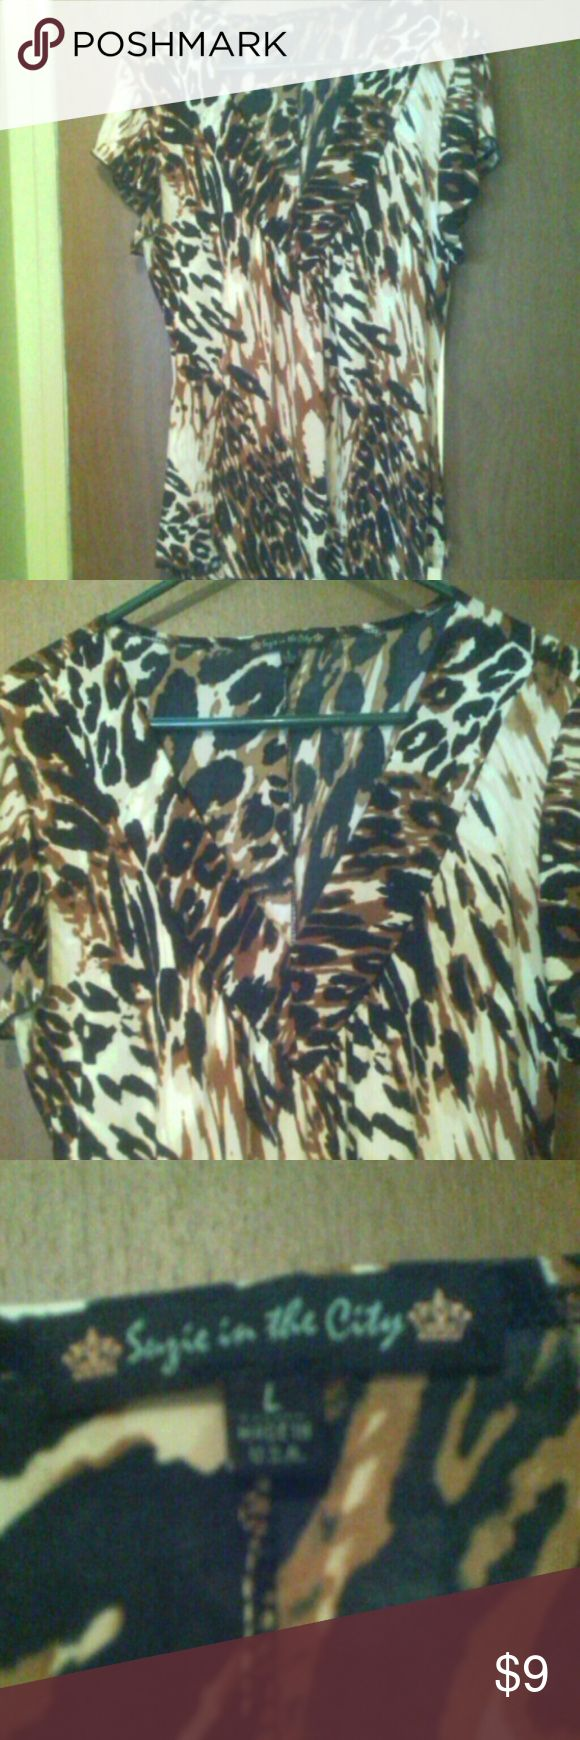 Black,Brown, and Cream Cap Sleeve Blouse Animal Print Black,Brown,and Cream Blouse. With capped sleeve Tops Blouses